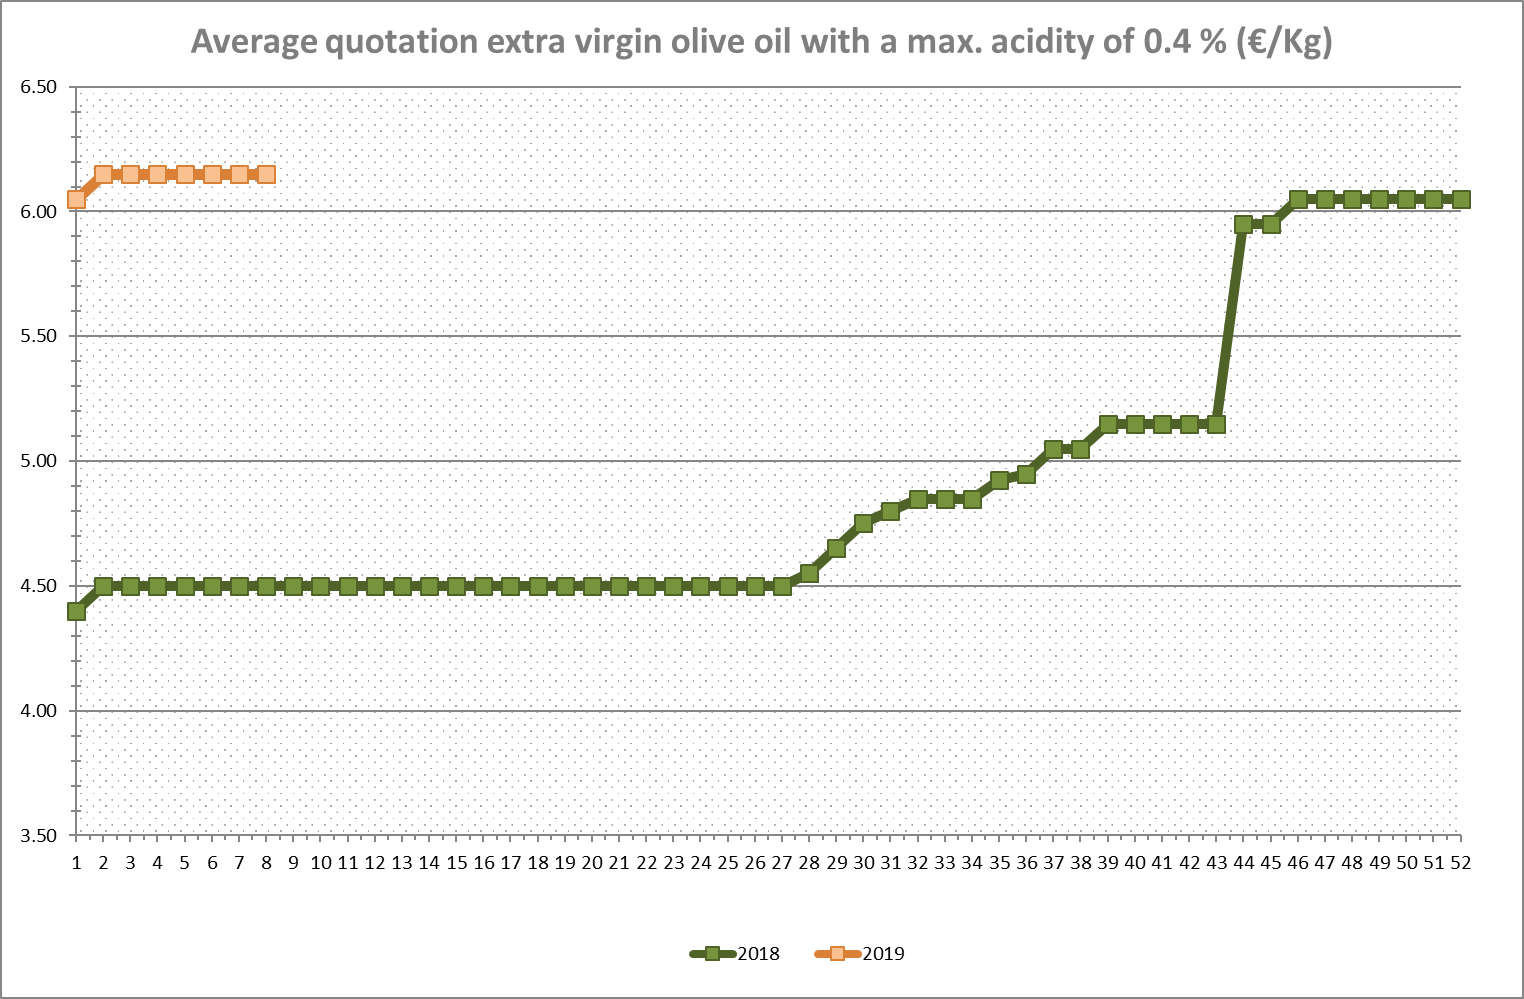 Average Quotation Olive Oil Italy